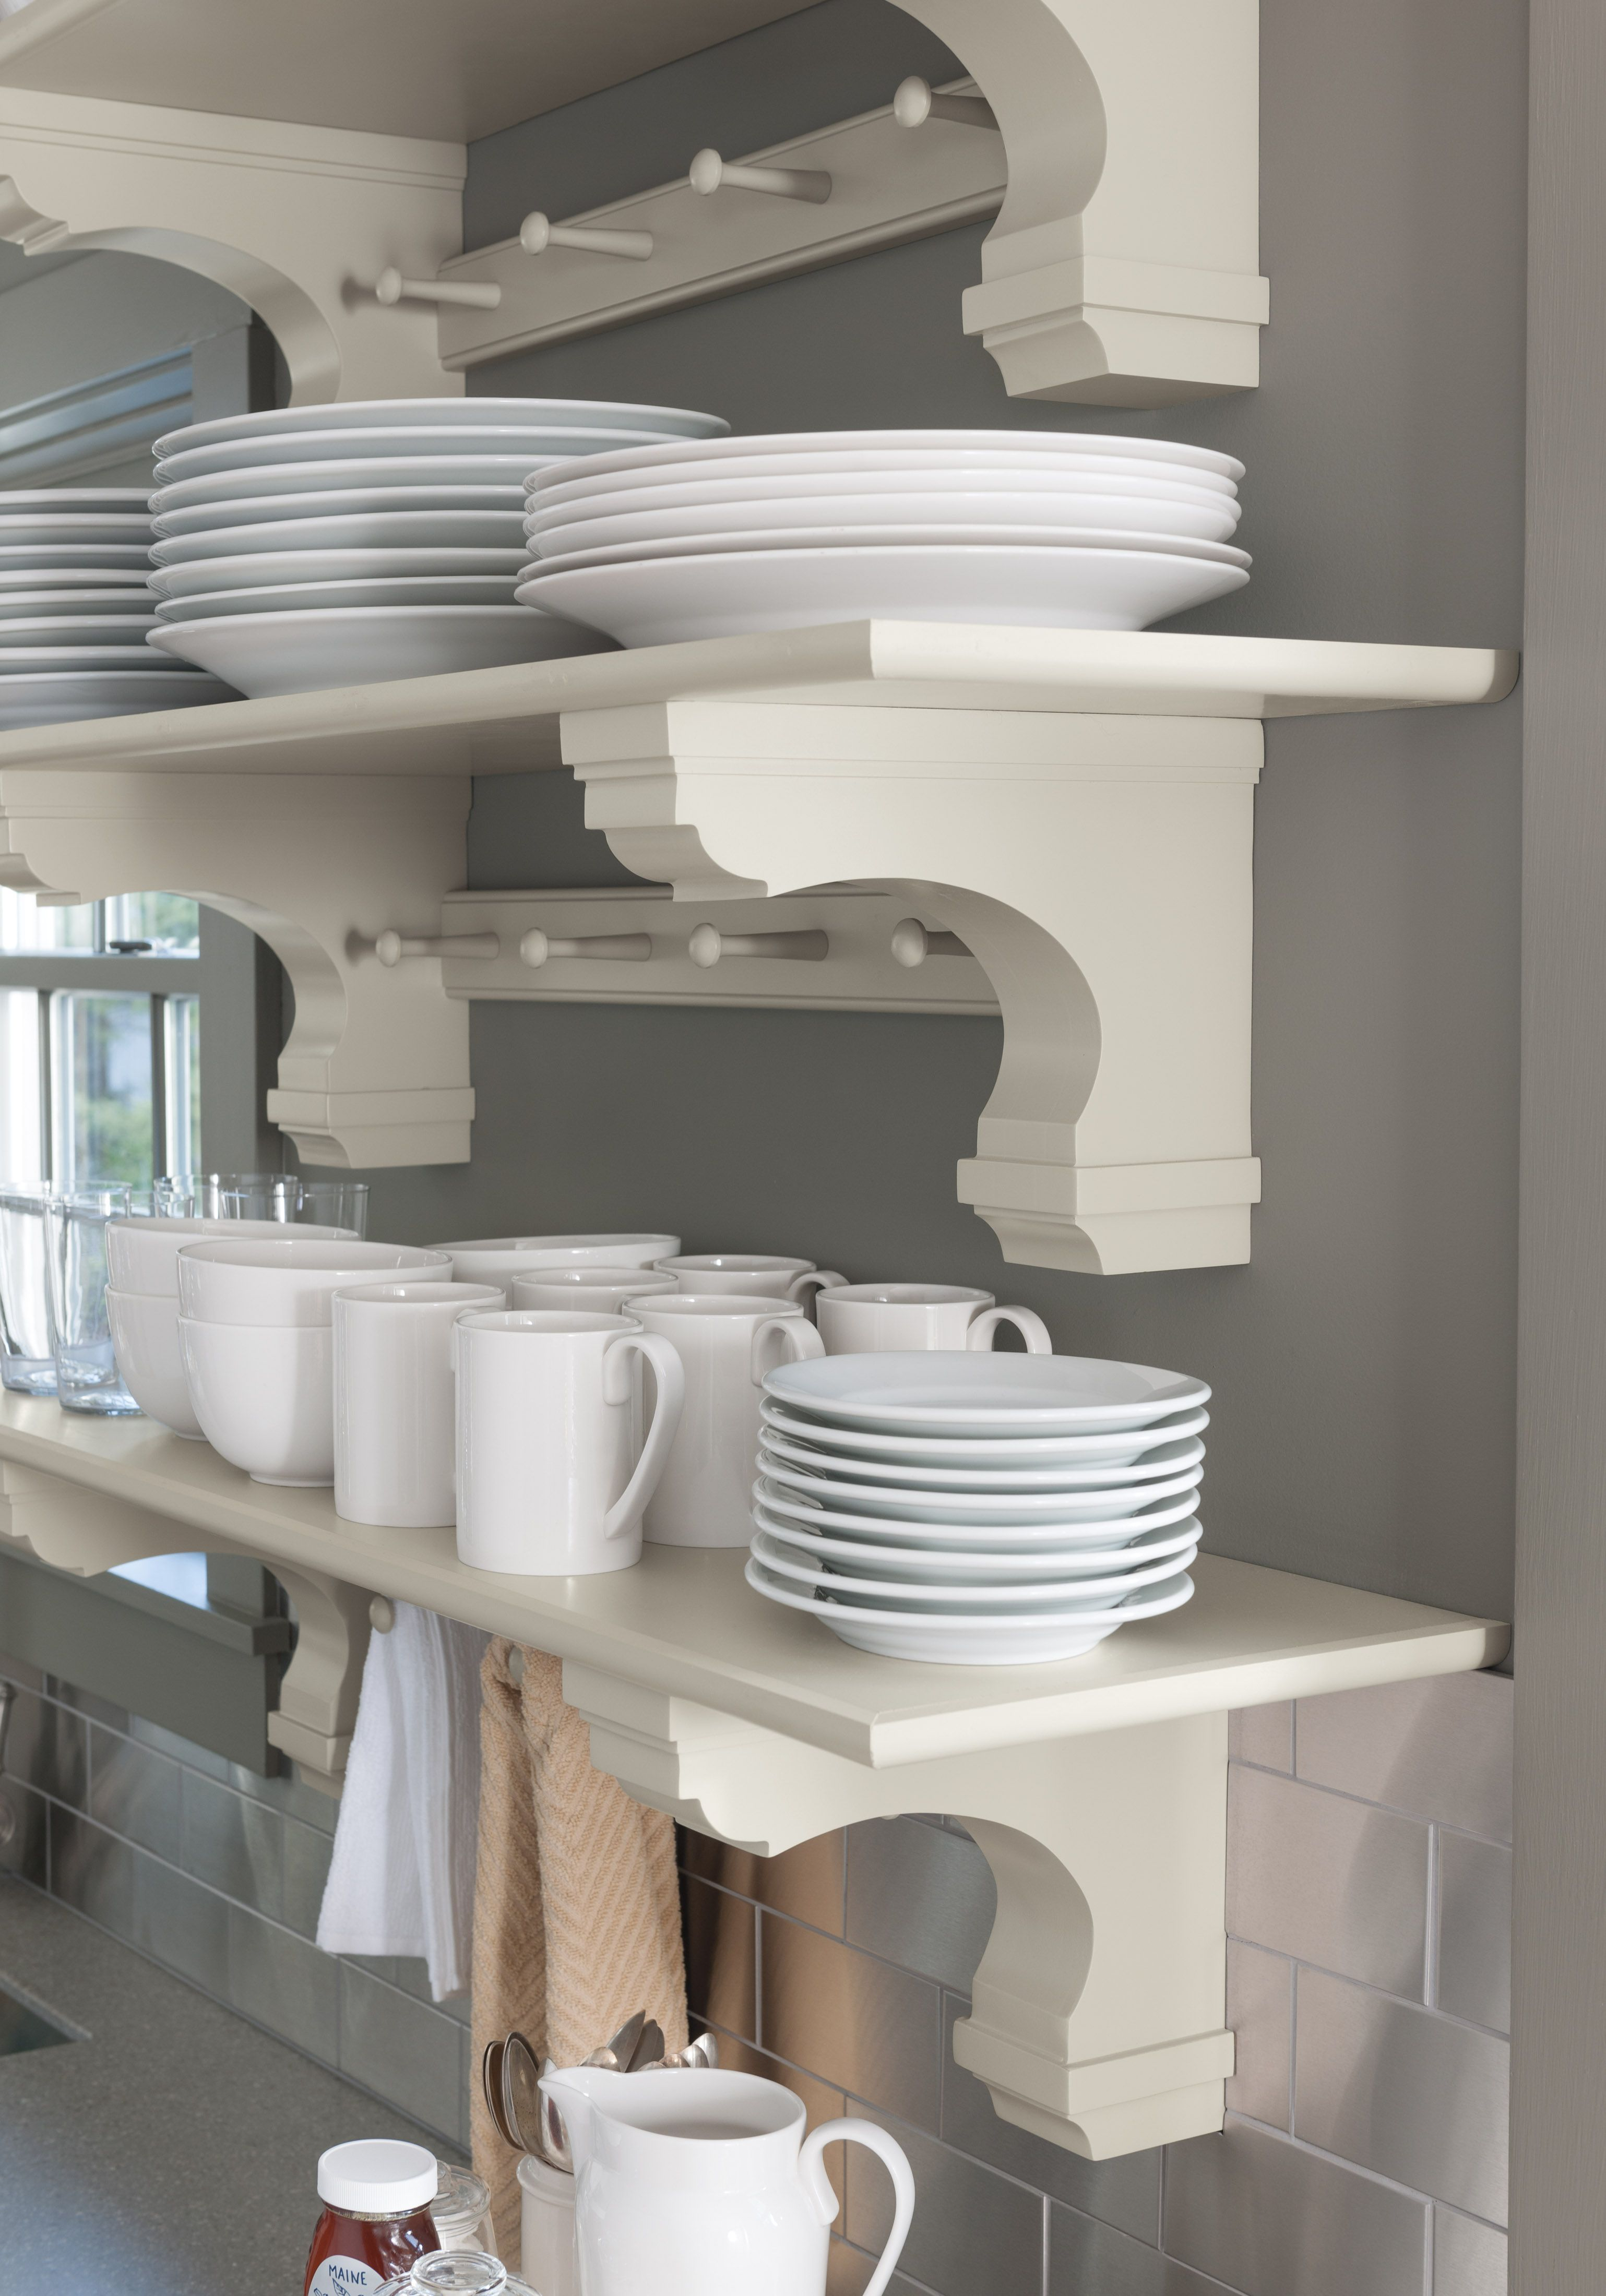 Kitchen Design Tip: Keep frequently used items within reach on open ...